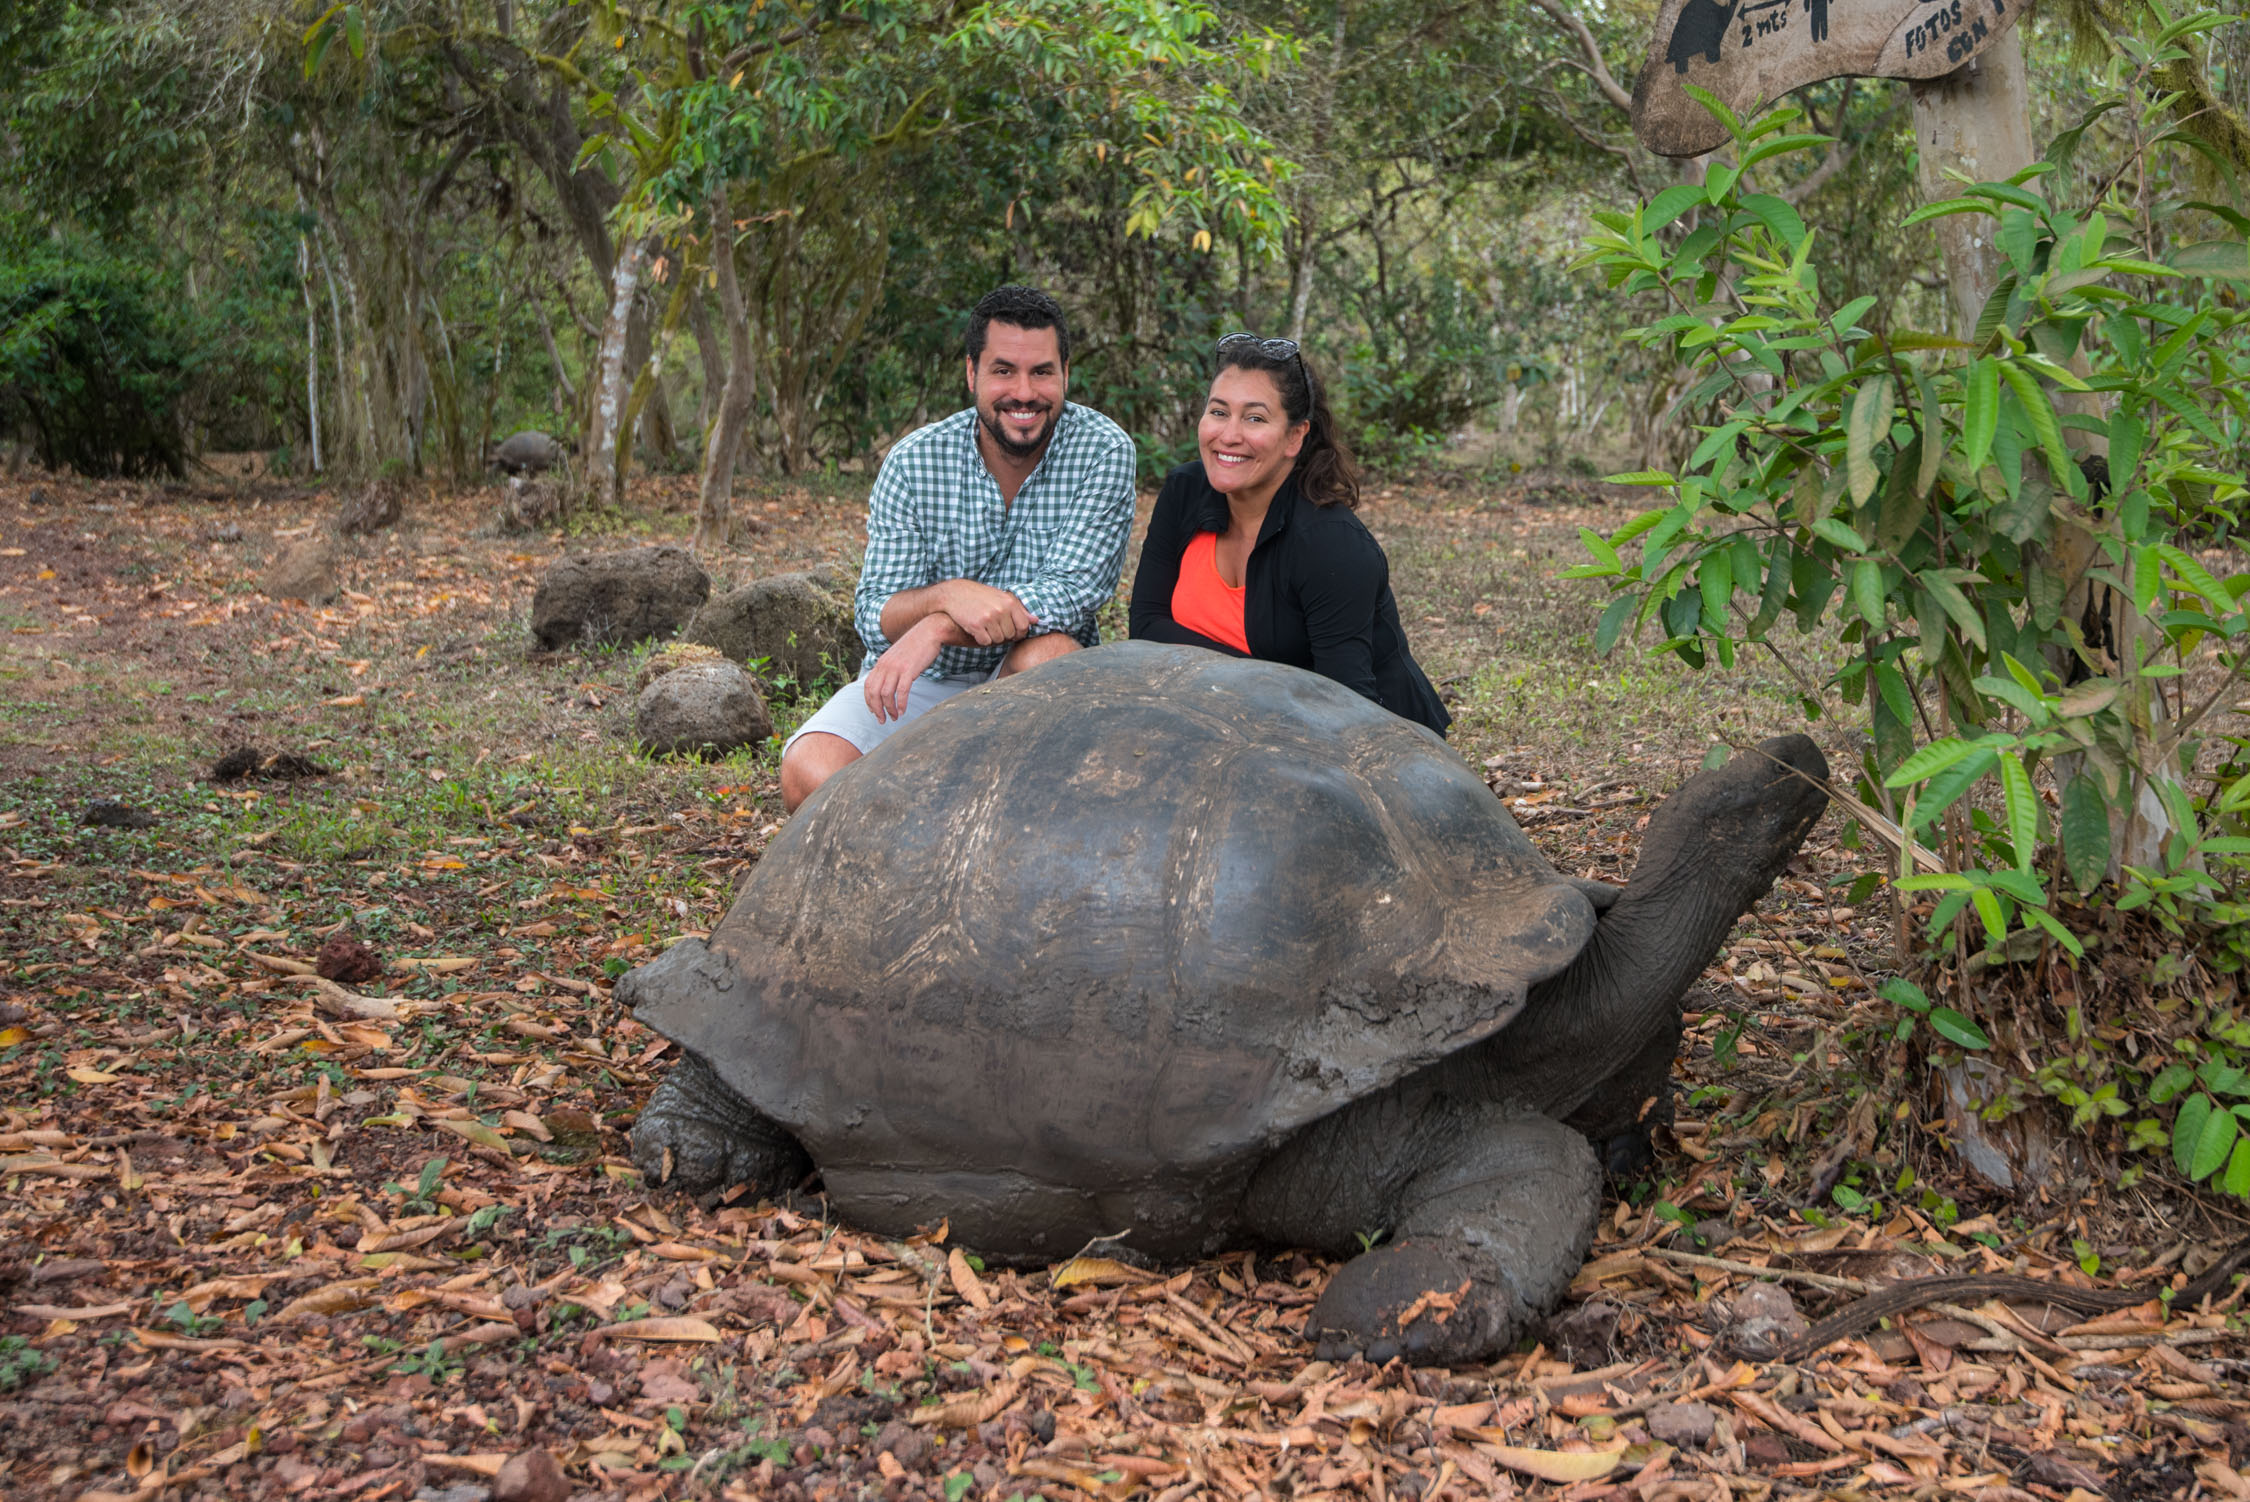 Chris and I posing with a Giant tortoise, who was more concerned about eating than taking a pic with us :)